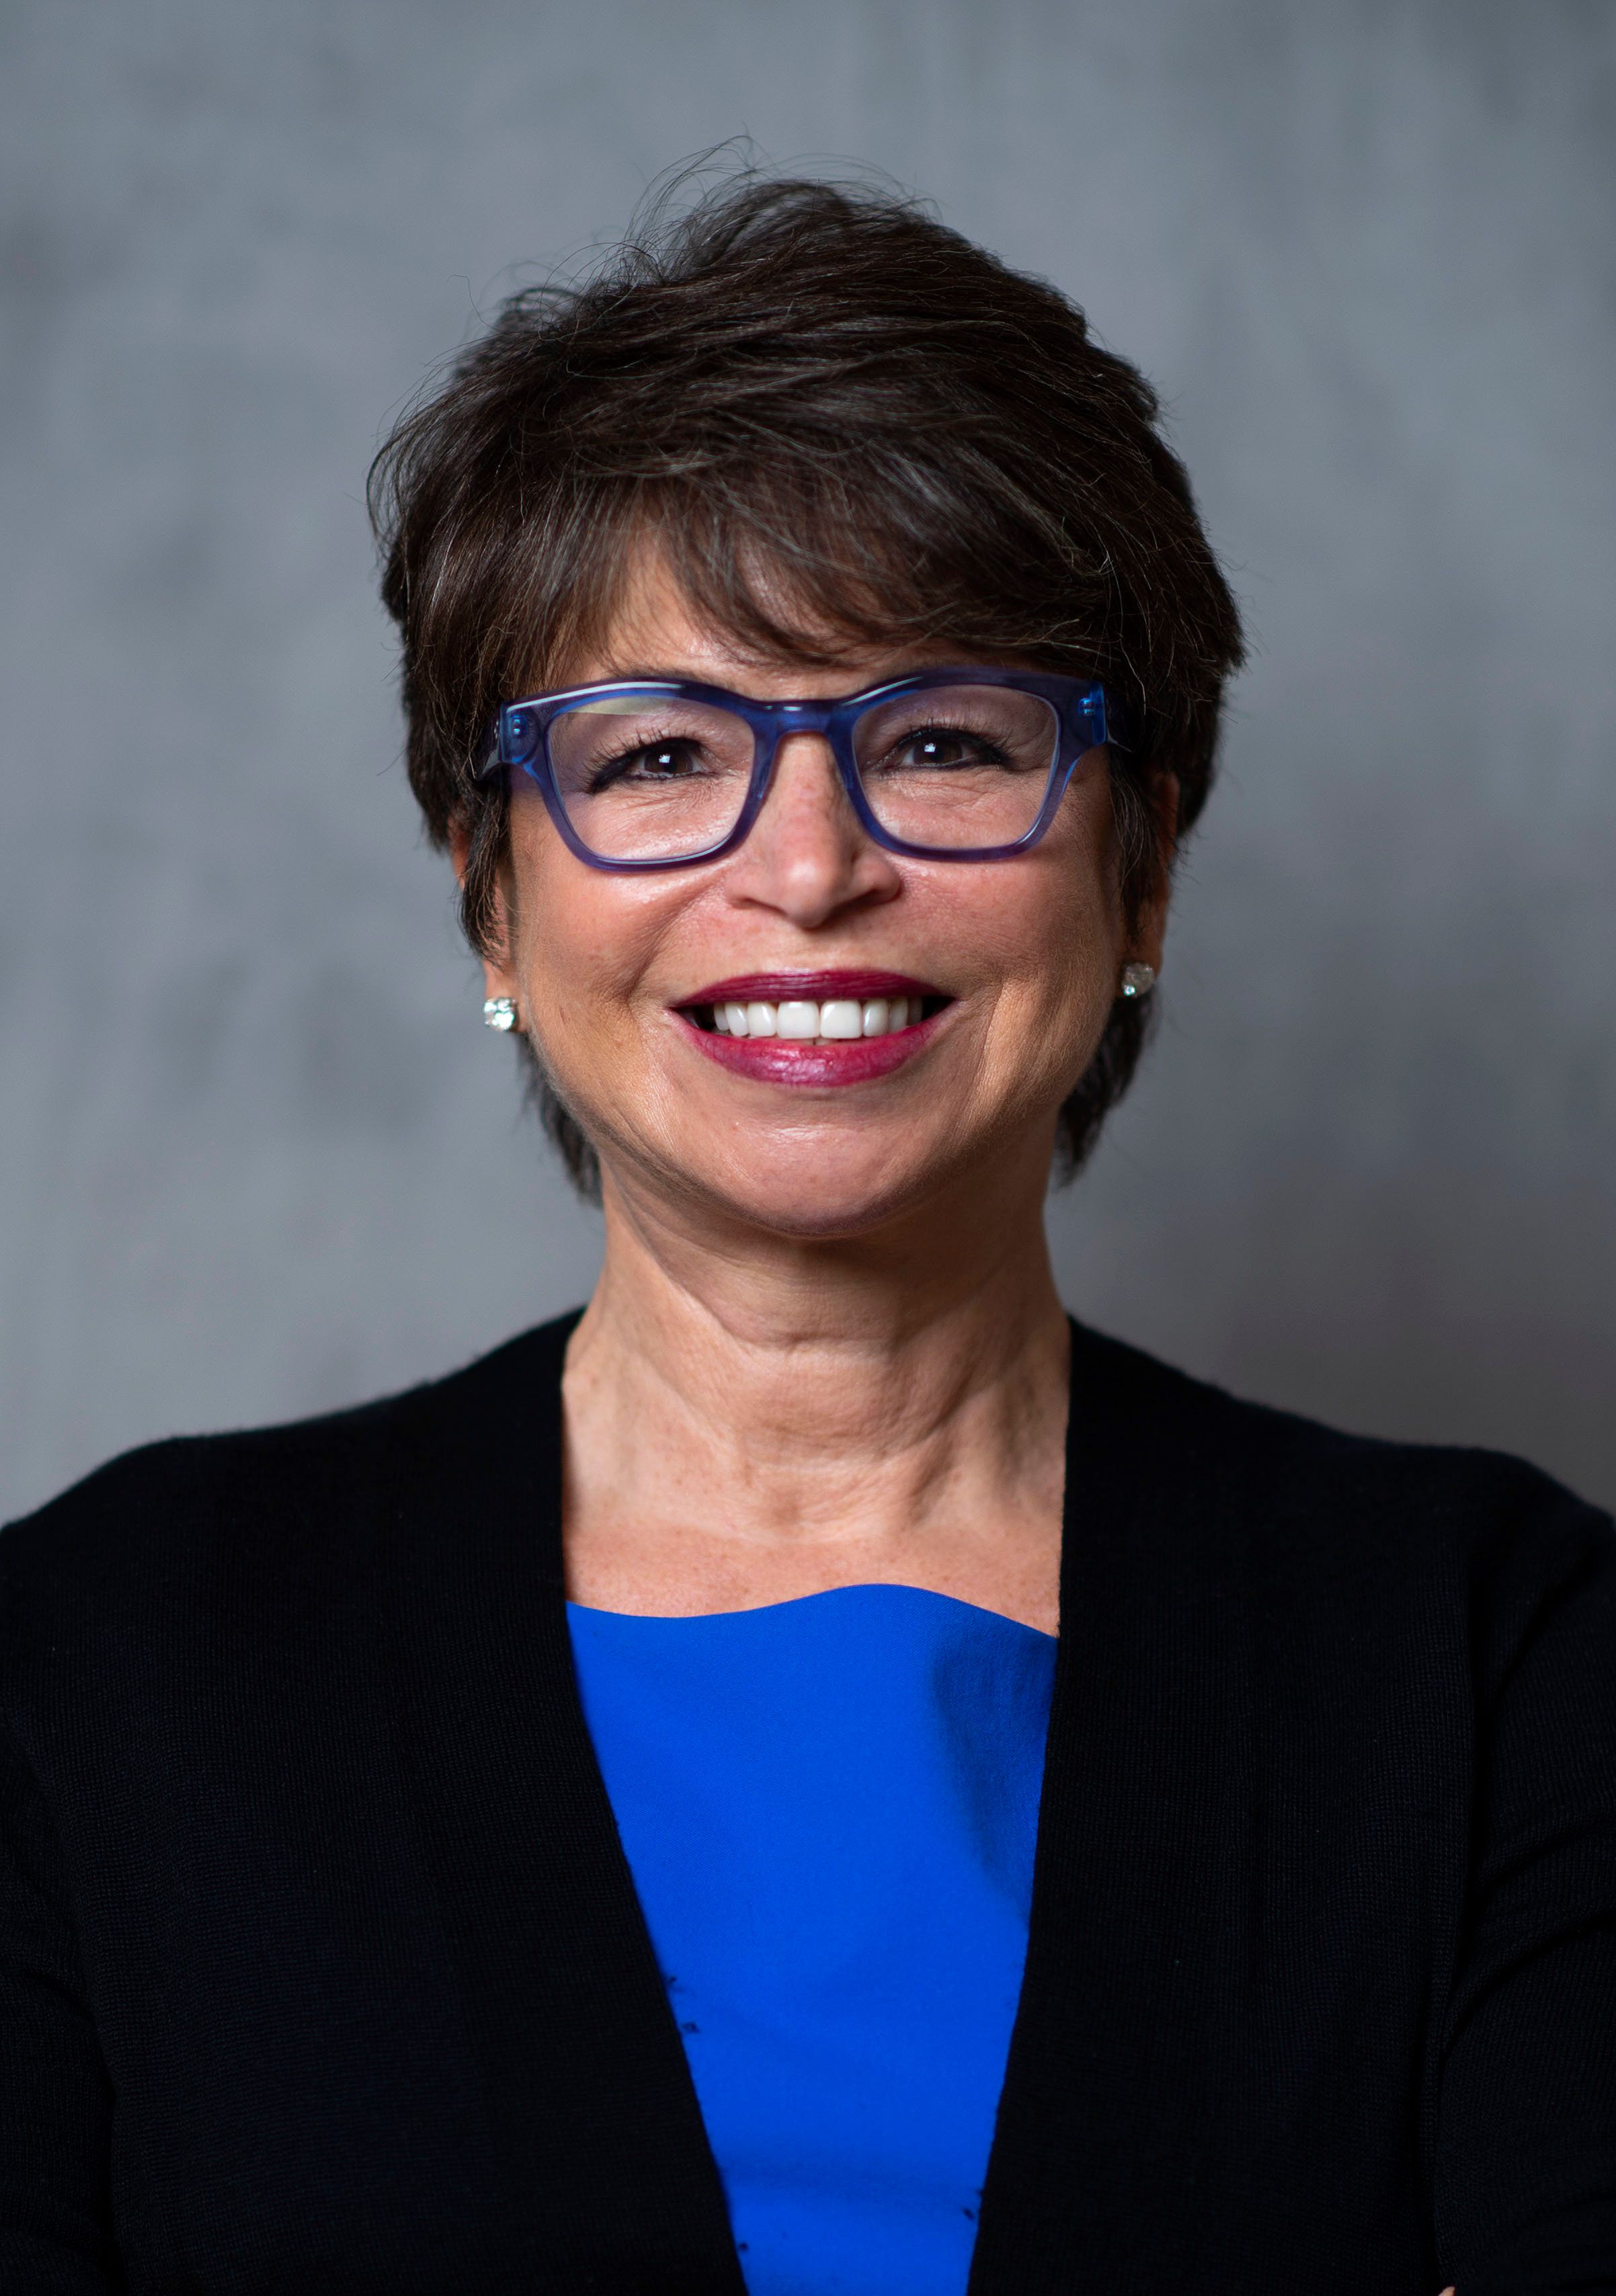 Civic leader Valerie Jarrett attends the United State of Women Summit on May 5, 2018, in Los Angeles, California. (Photo by VALERIE MACON / AFP)        (Photo credit should read VALERIE MACON/AFP/Getty Images)